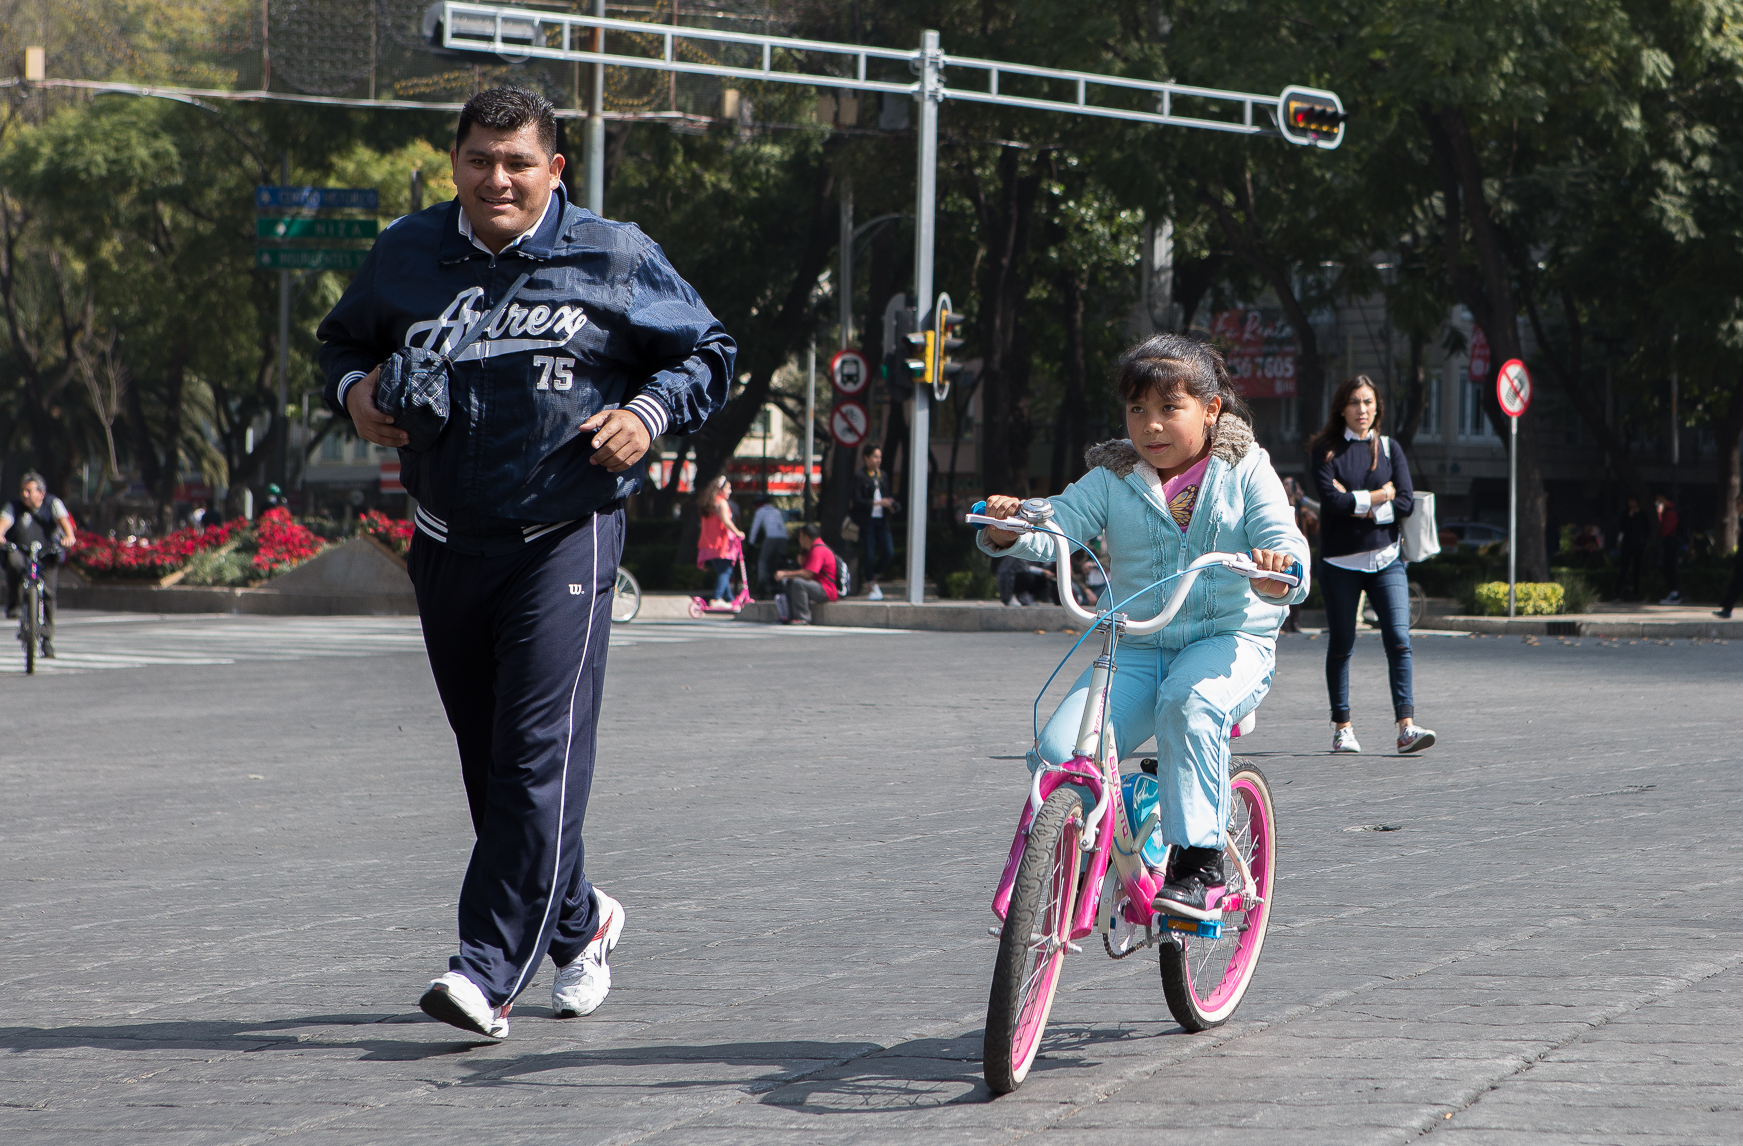 Captured this cute moment of a father running with his daughter as she biked around Angel de la Independecia (Angel of Independence) in Mexico City, Mexico.